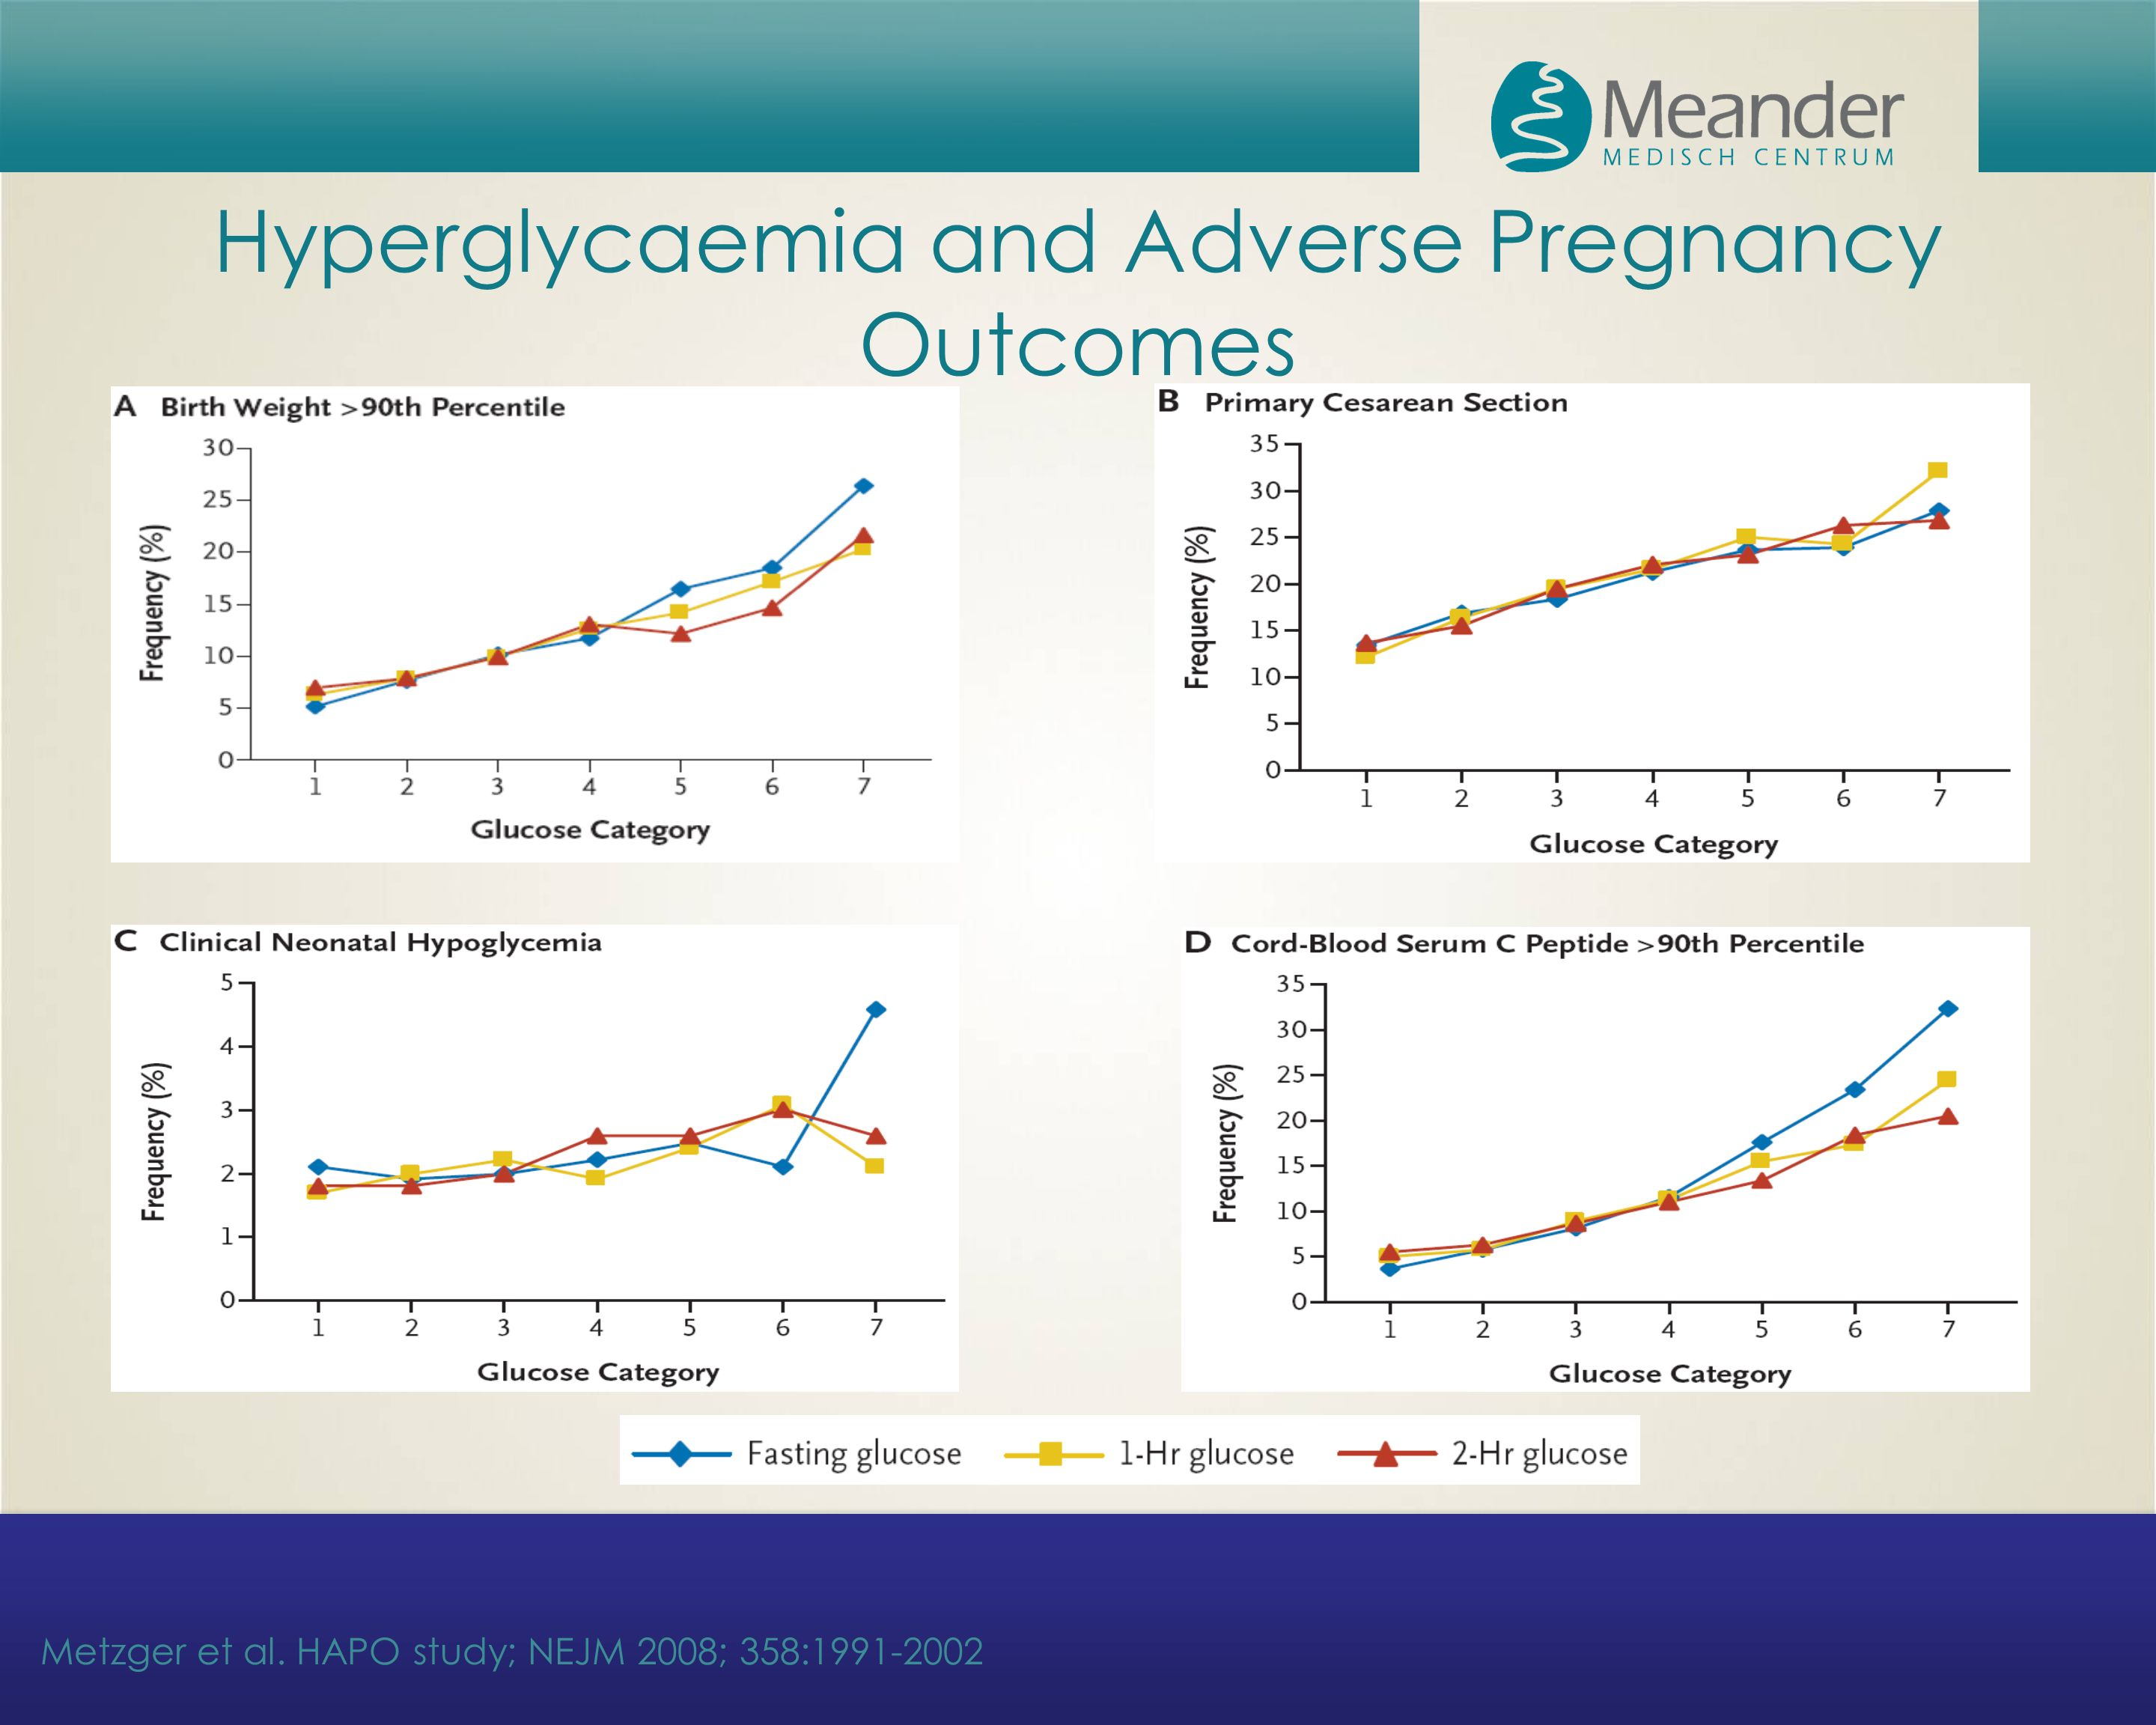 Hyperglycaemia and Adverse Pregnancy Outcomes